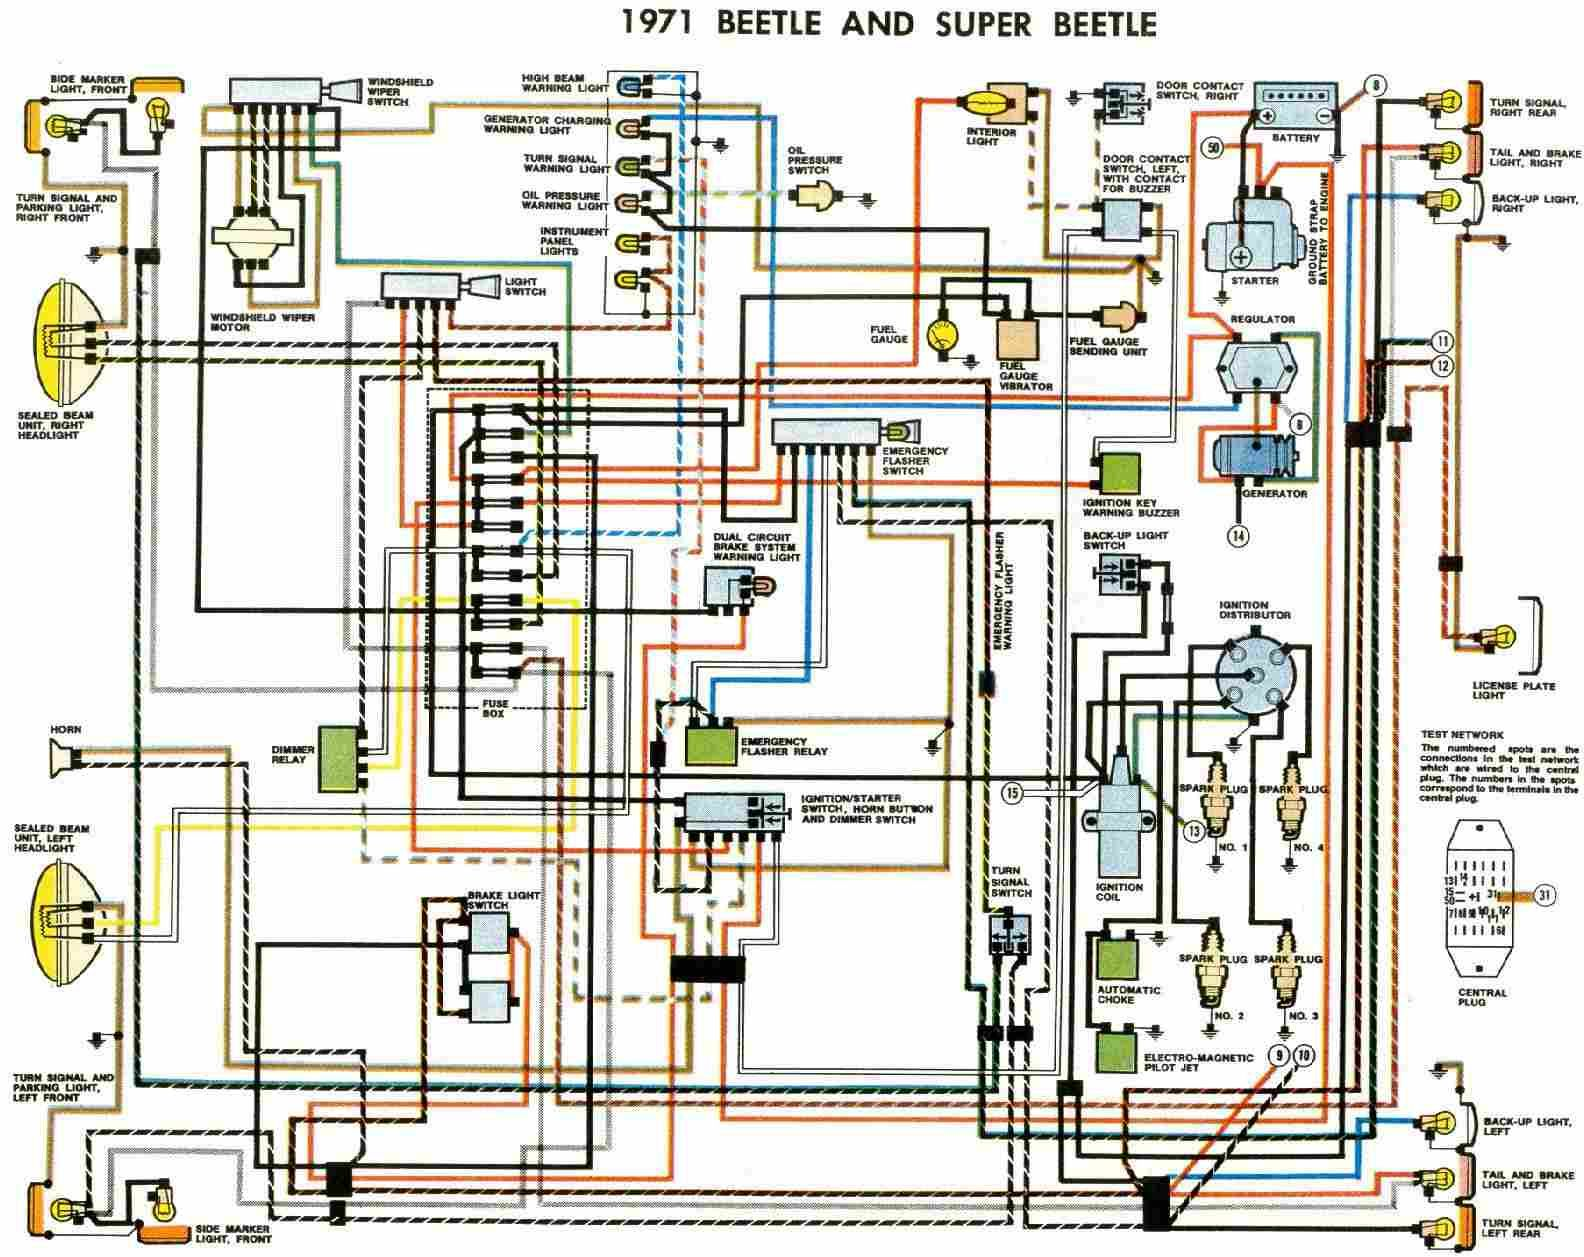 6379f2a777a0eb1b27fdba46670ceb6a free auto wiring diagram 1971 vw beetle and super beetle byocar 1971 vw bus wiring diagram at honlapkeszites.co